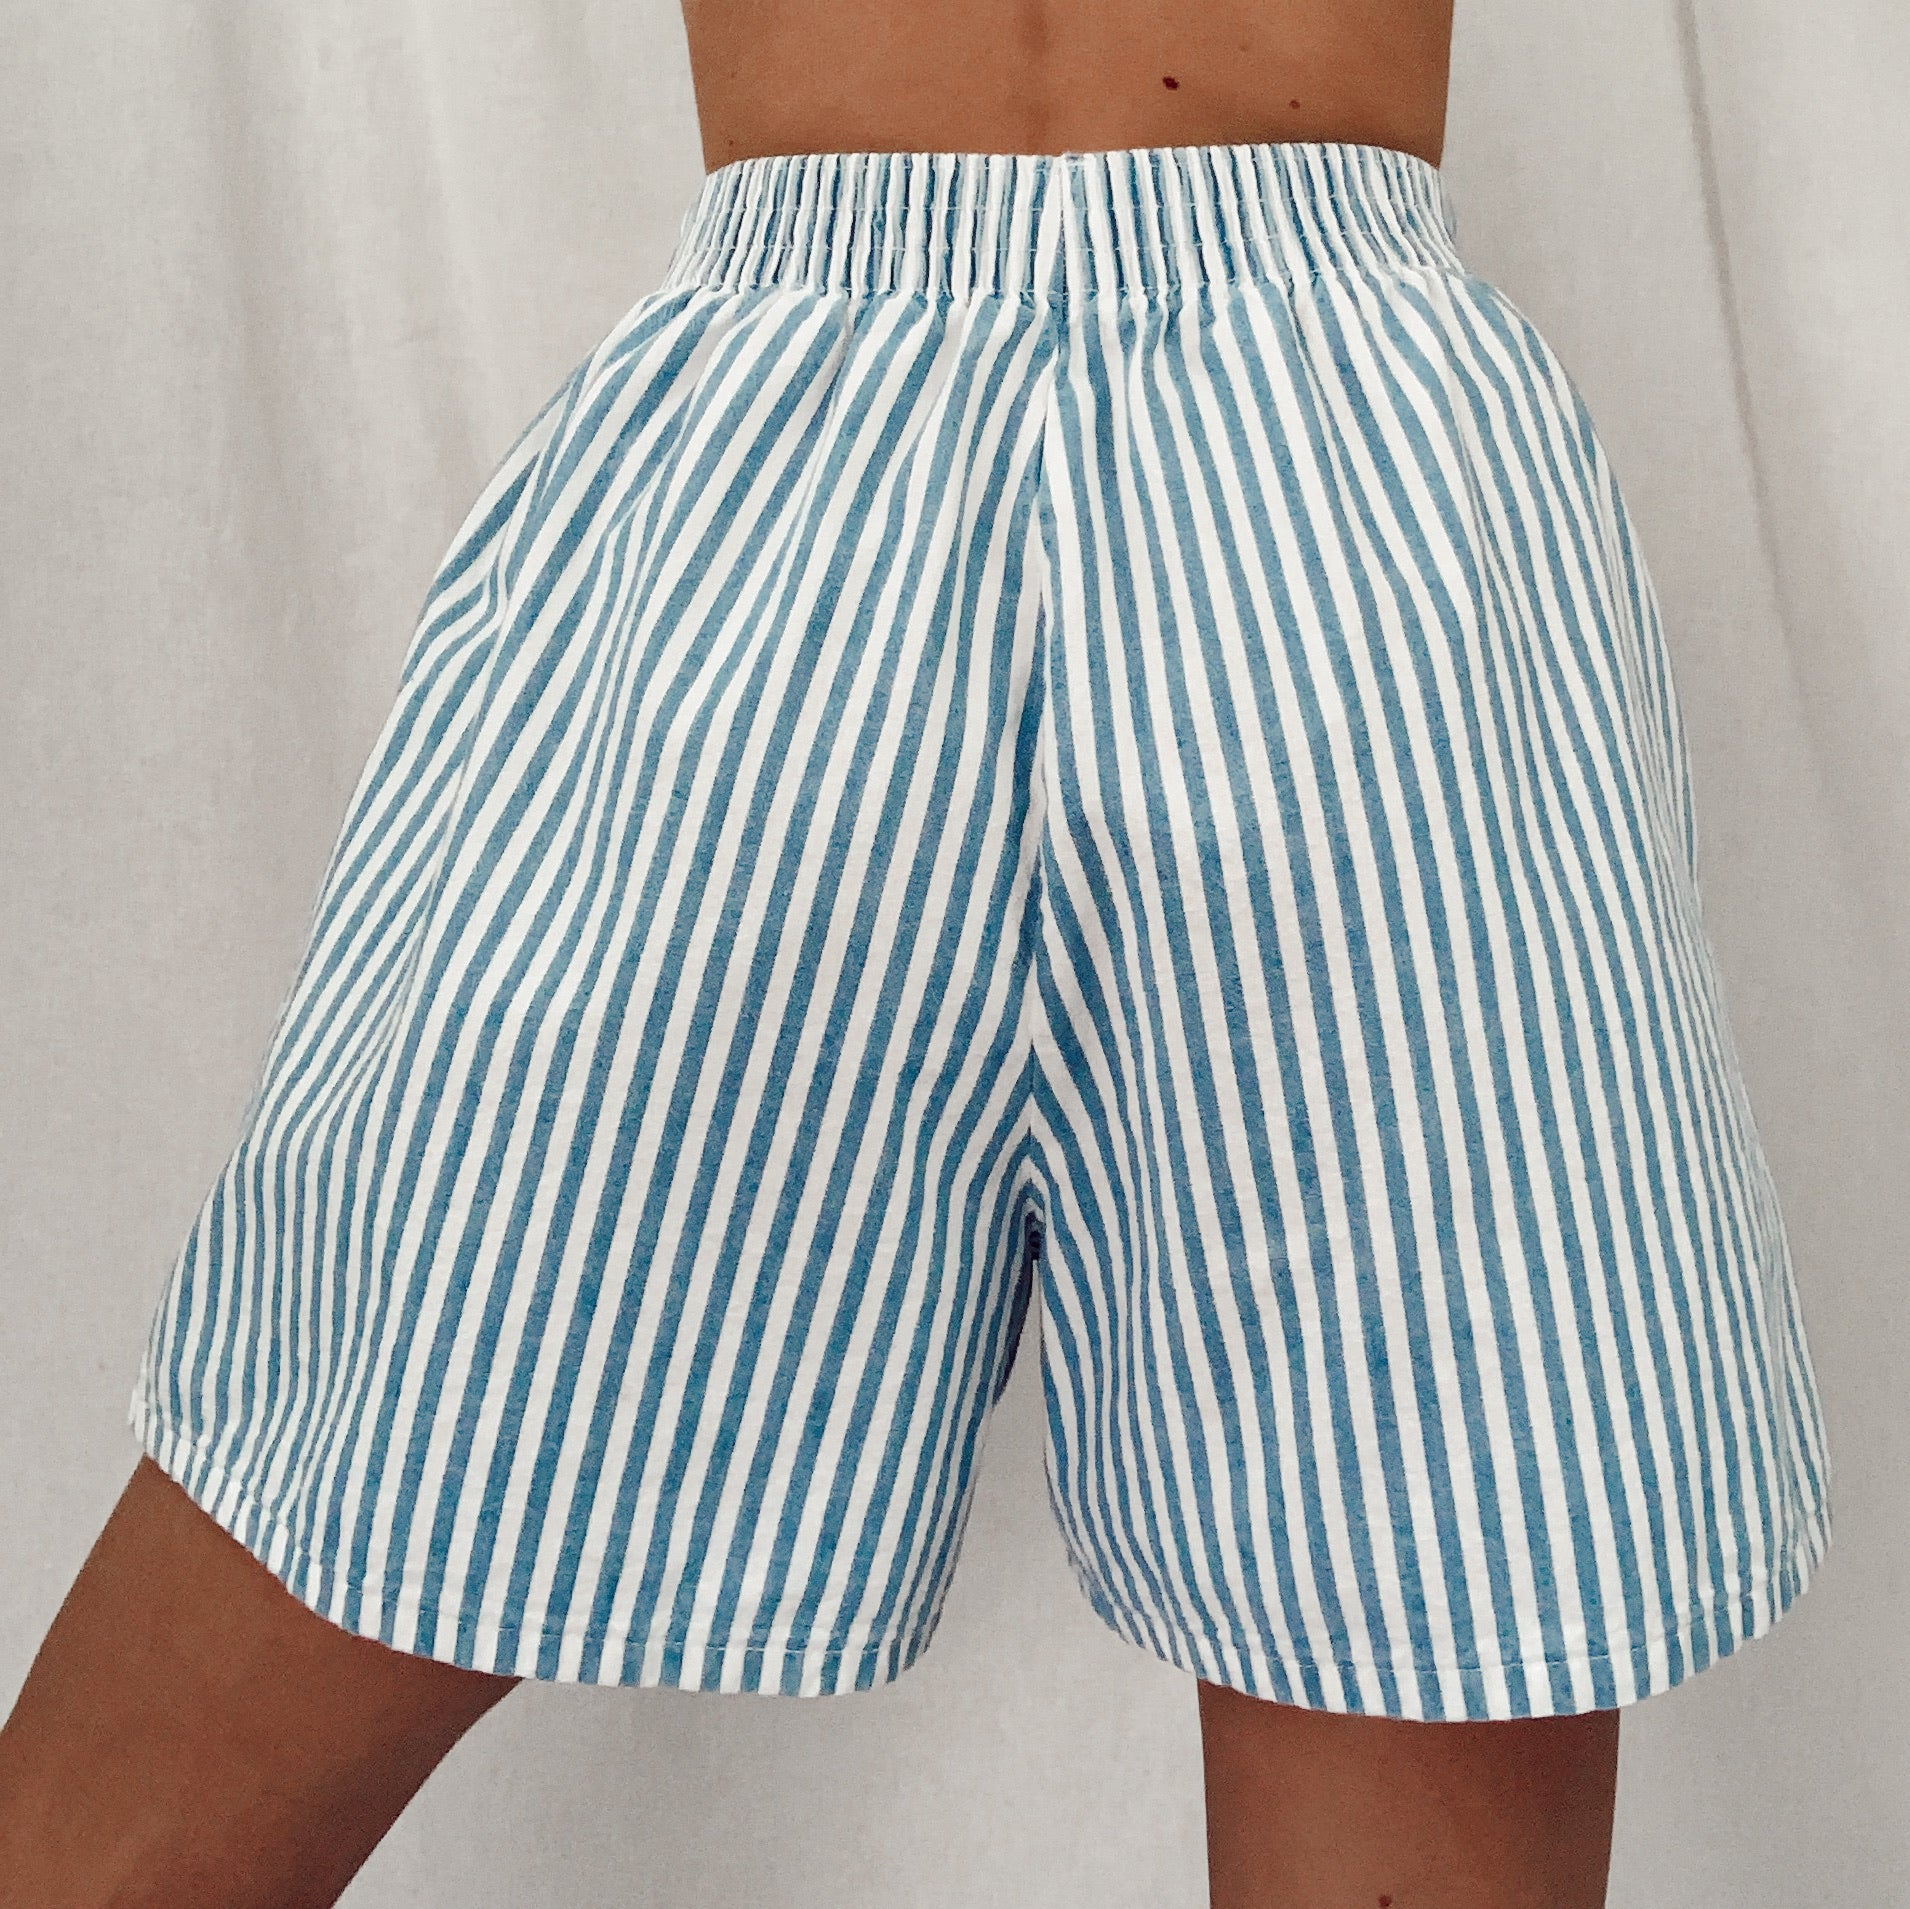 80's Cotton Shorts (S-M)